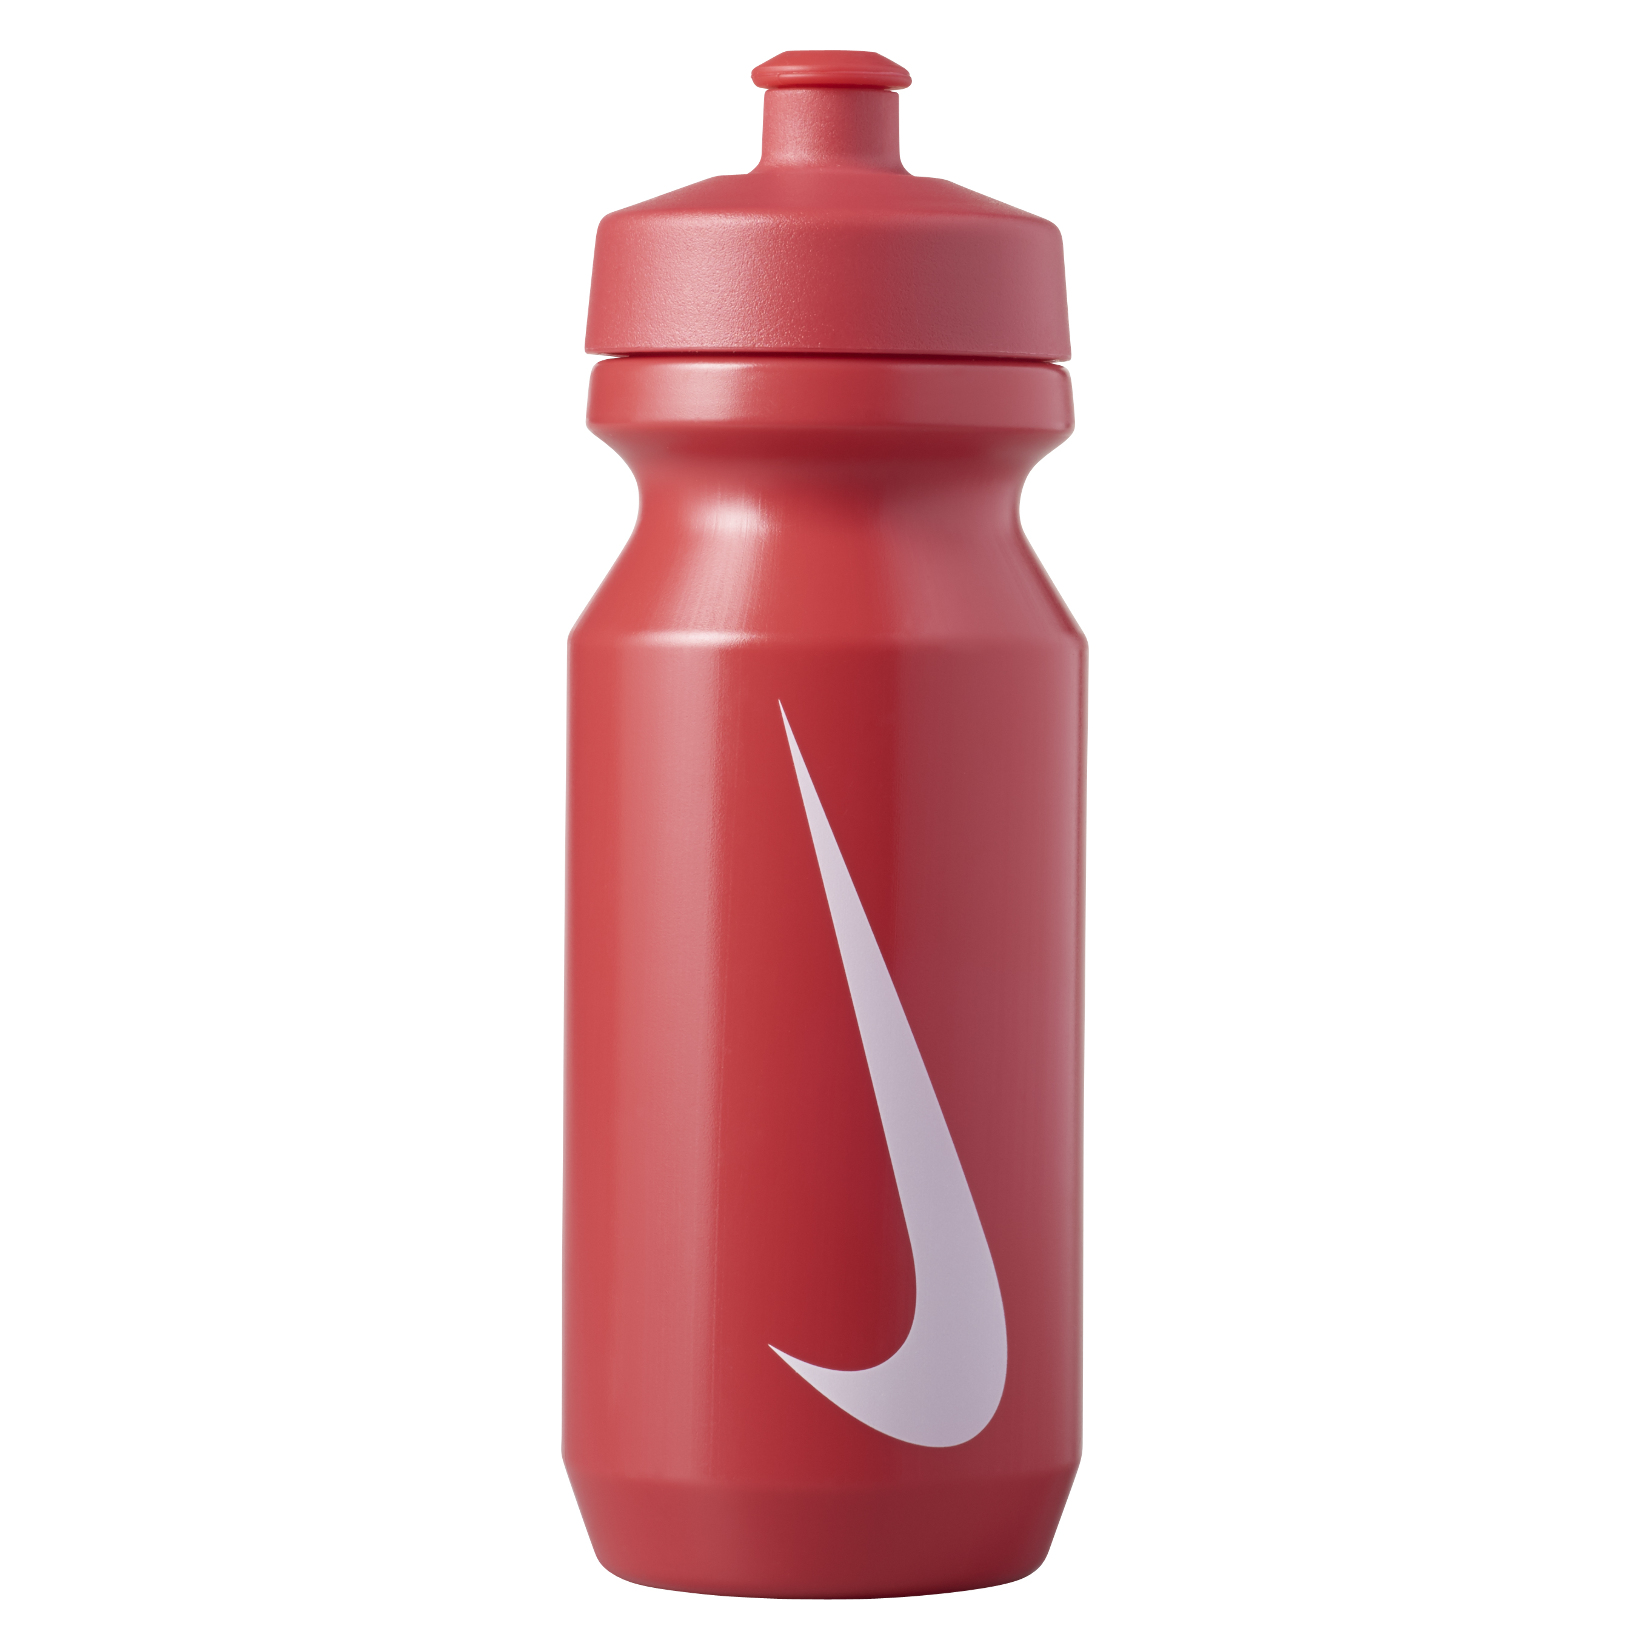 Sportax Nike Big Mouth Bottle 2.0 22oz